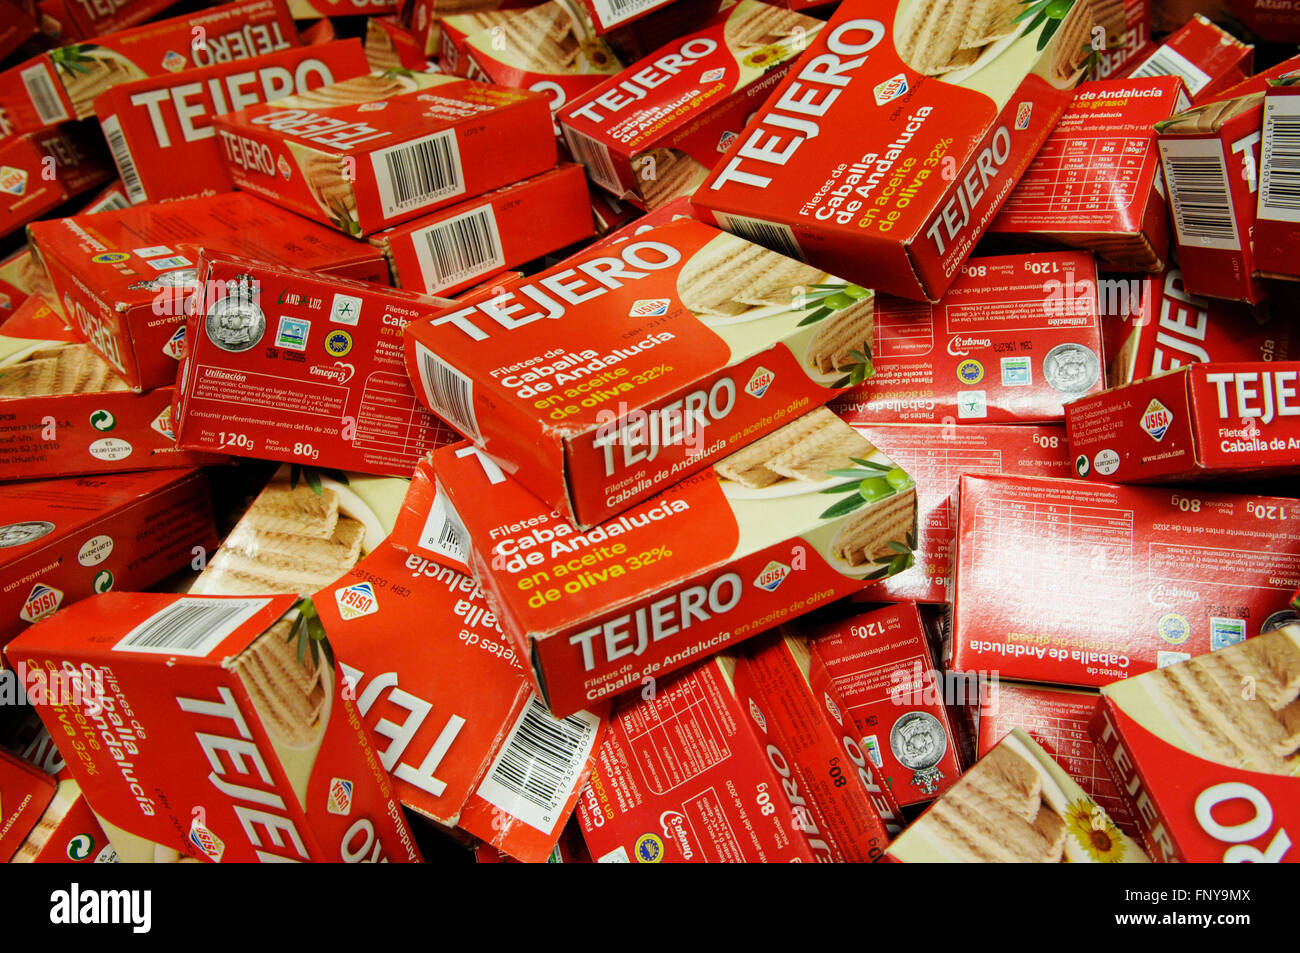 TEJERO trap tuna in olive oil 3-pack drained weight 67 g tins in boxes. - Stock Image